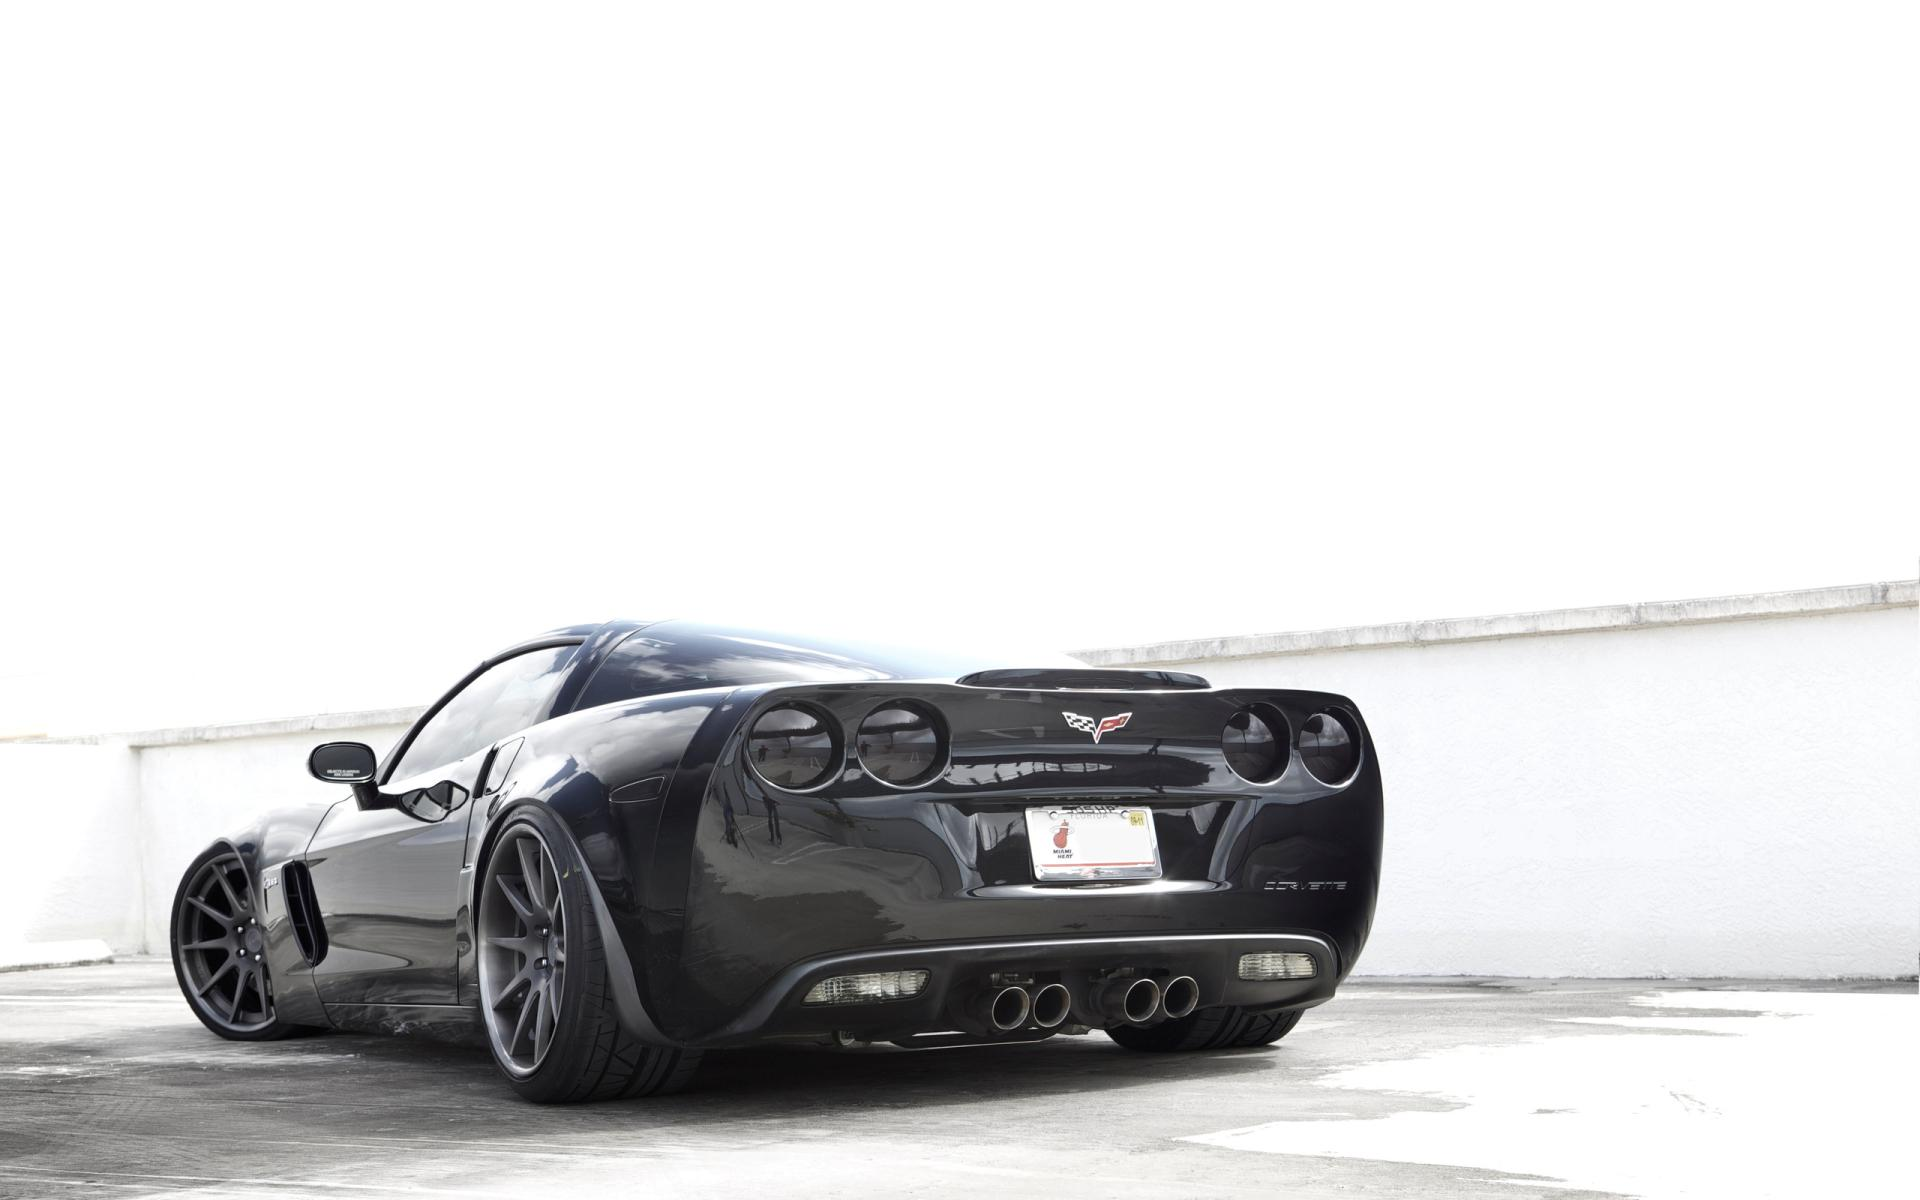 Corvette wallpapers HD quality